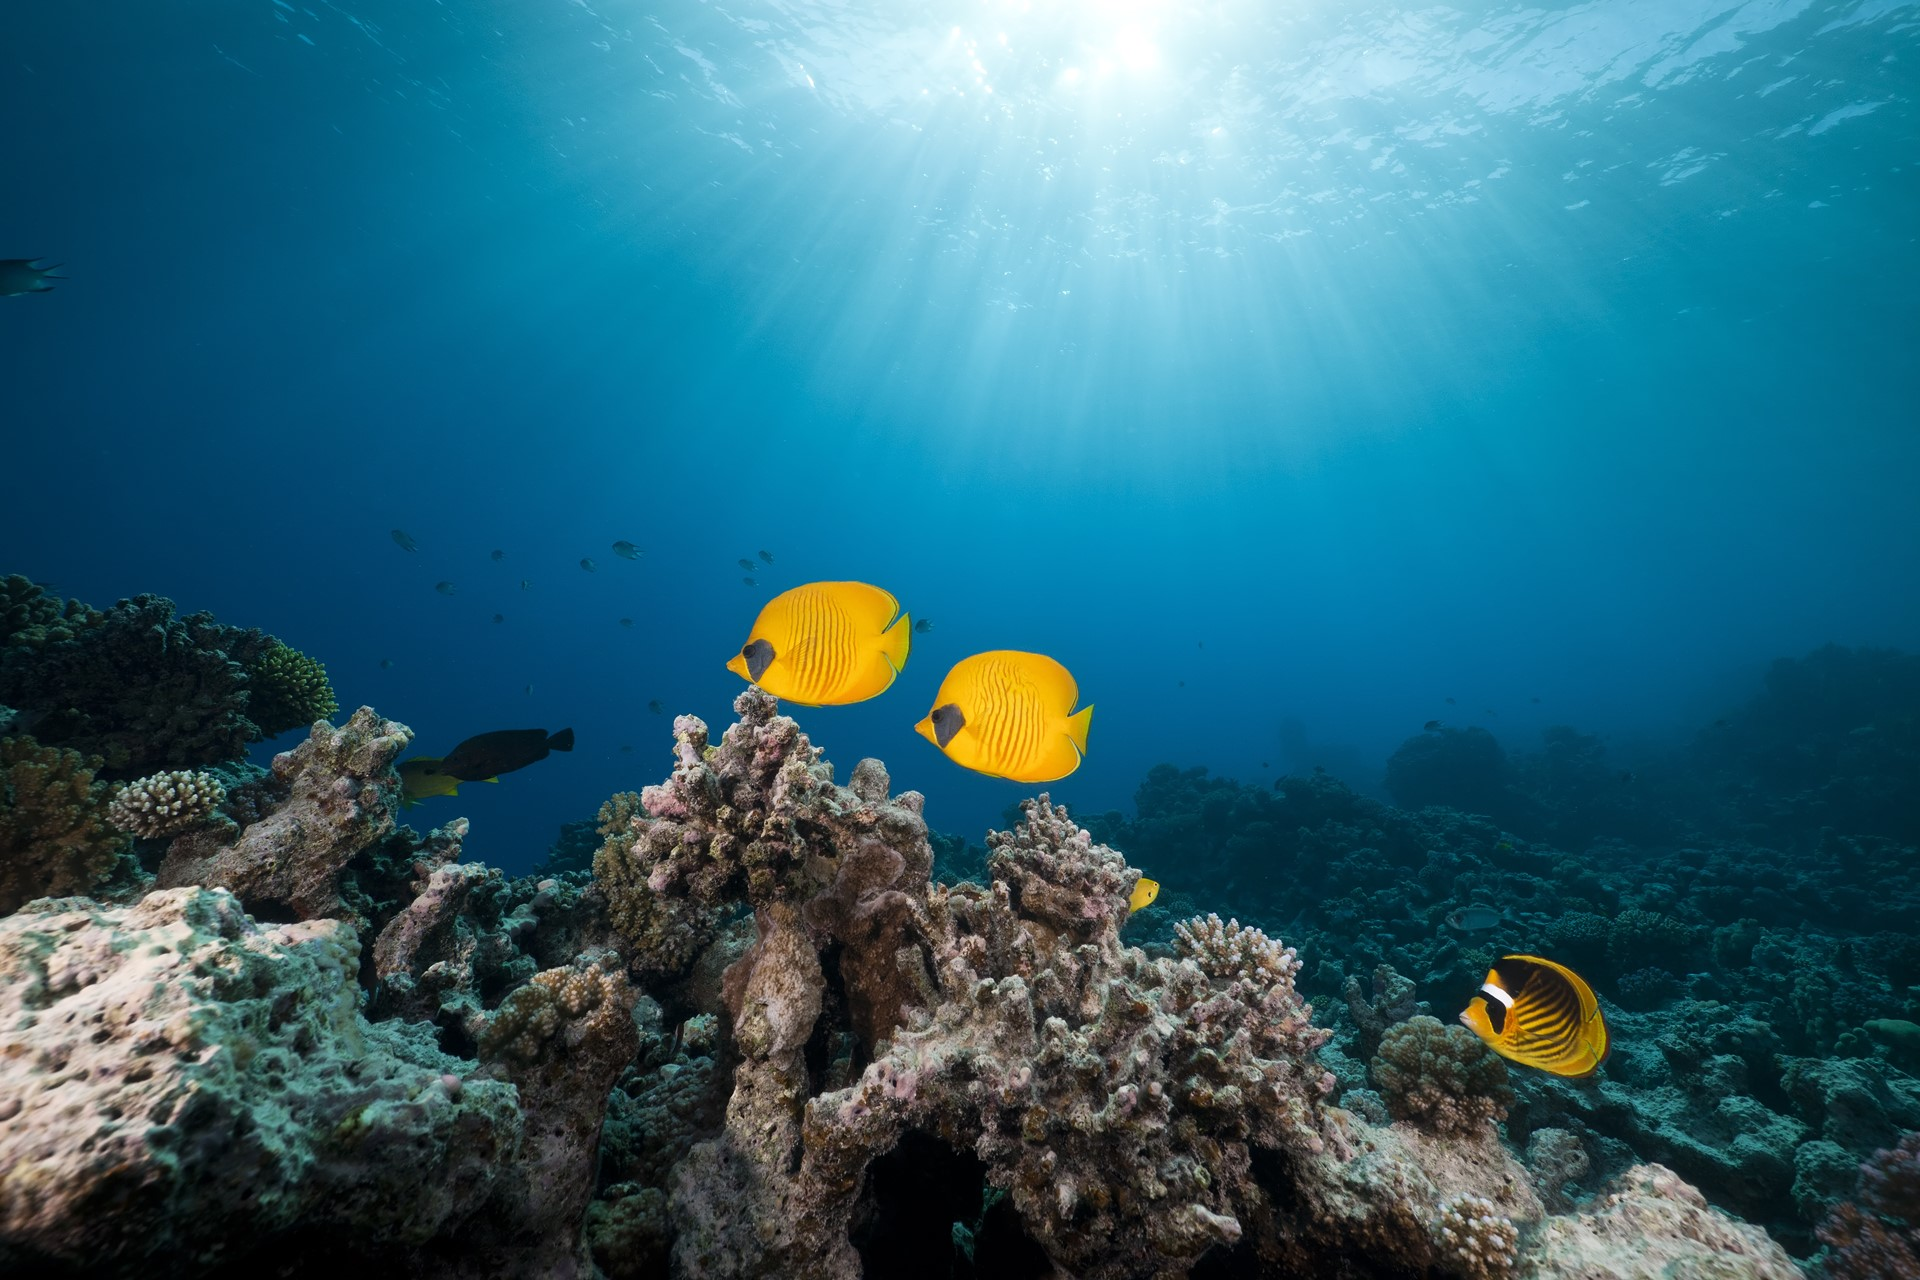 Yellow two fish under deep American Sea Wallpaper for Desktop